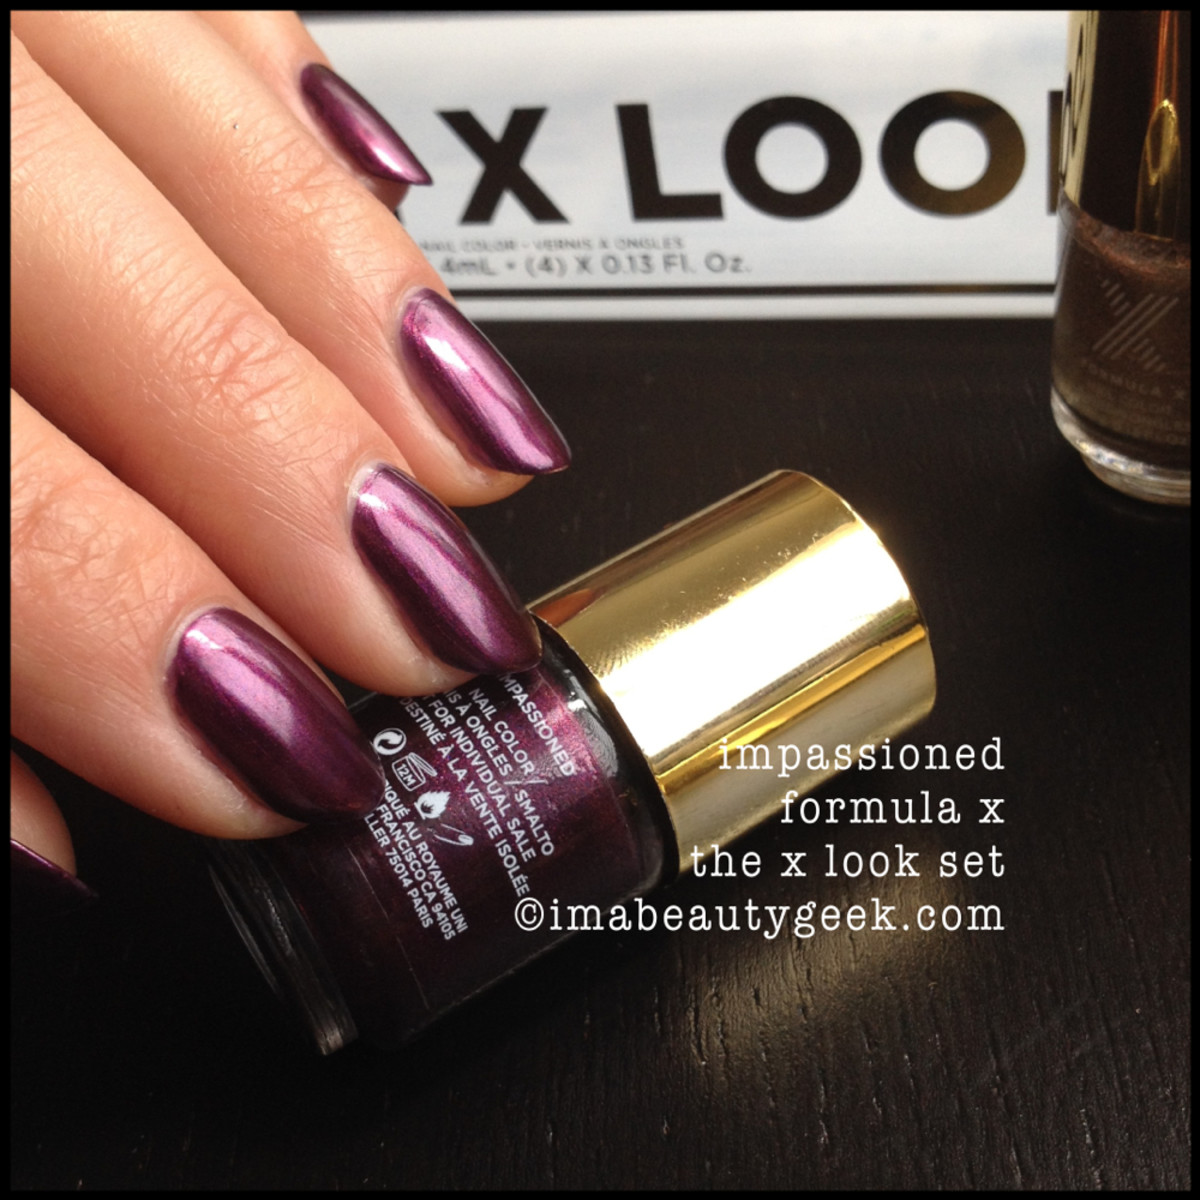 Formula X Impassioned The X Look Set Sephora Beautygeeks